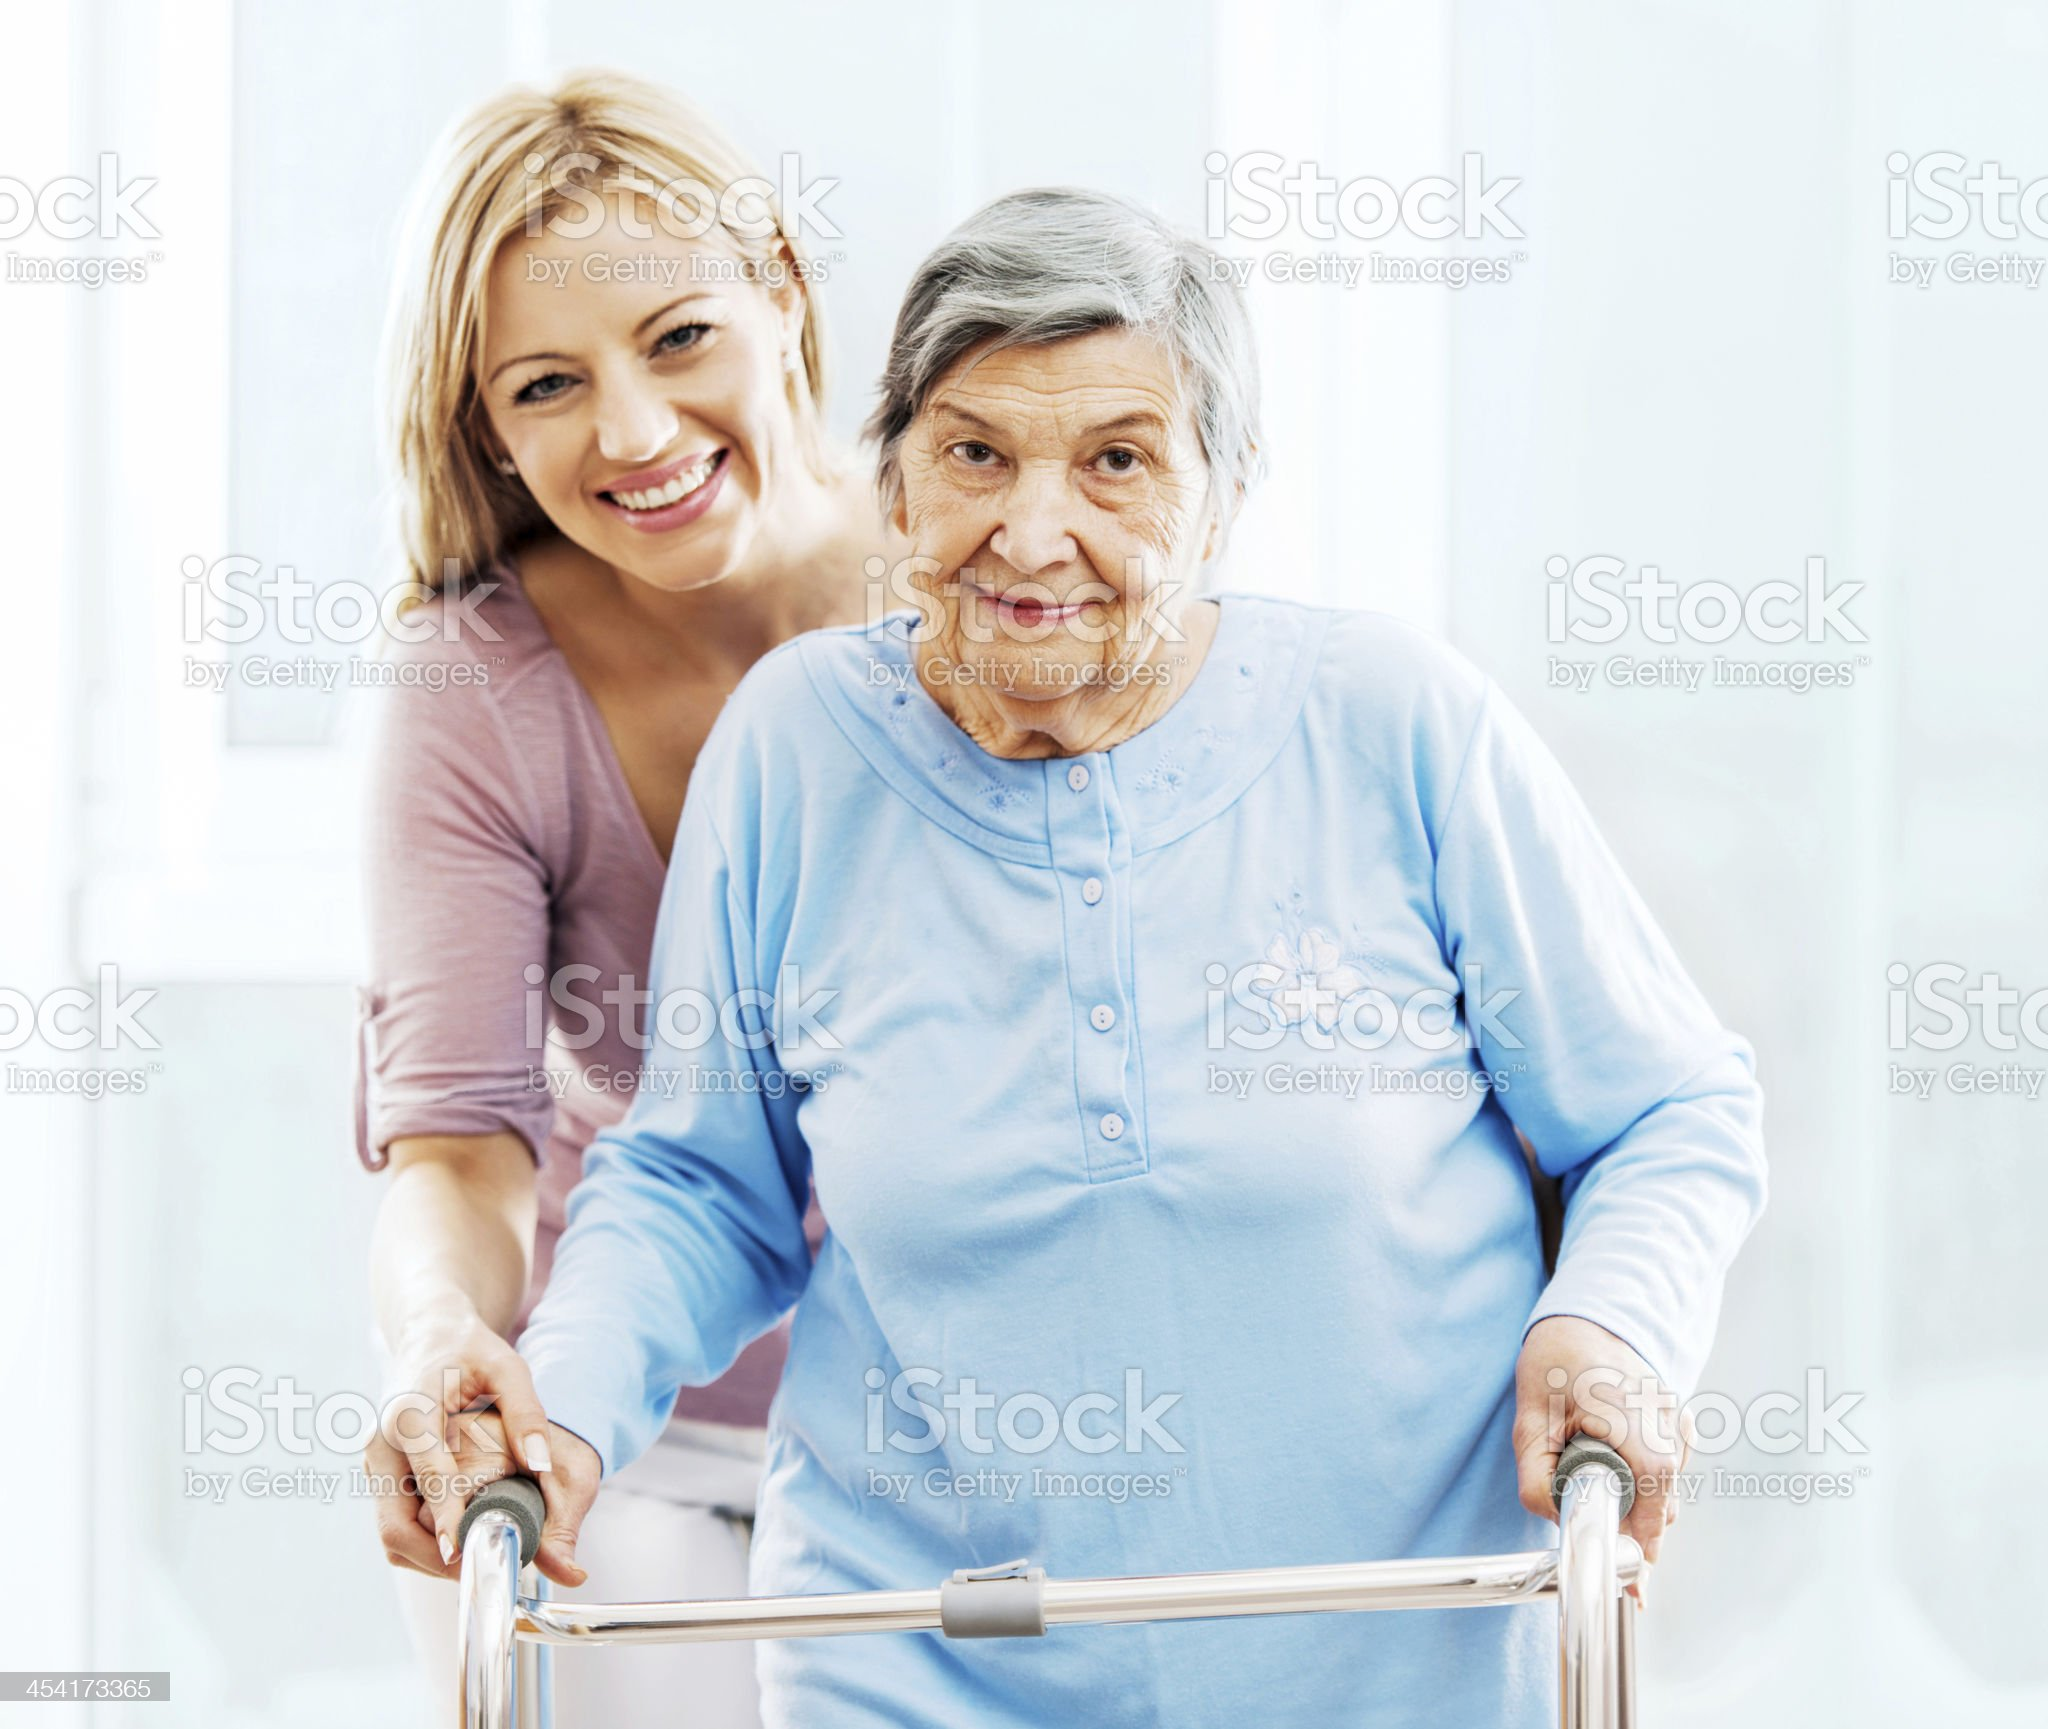 Cheerful healthcare worker with a patient. royalty-free stock photo